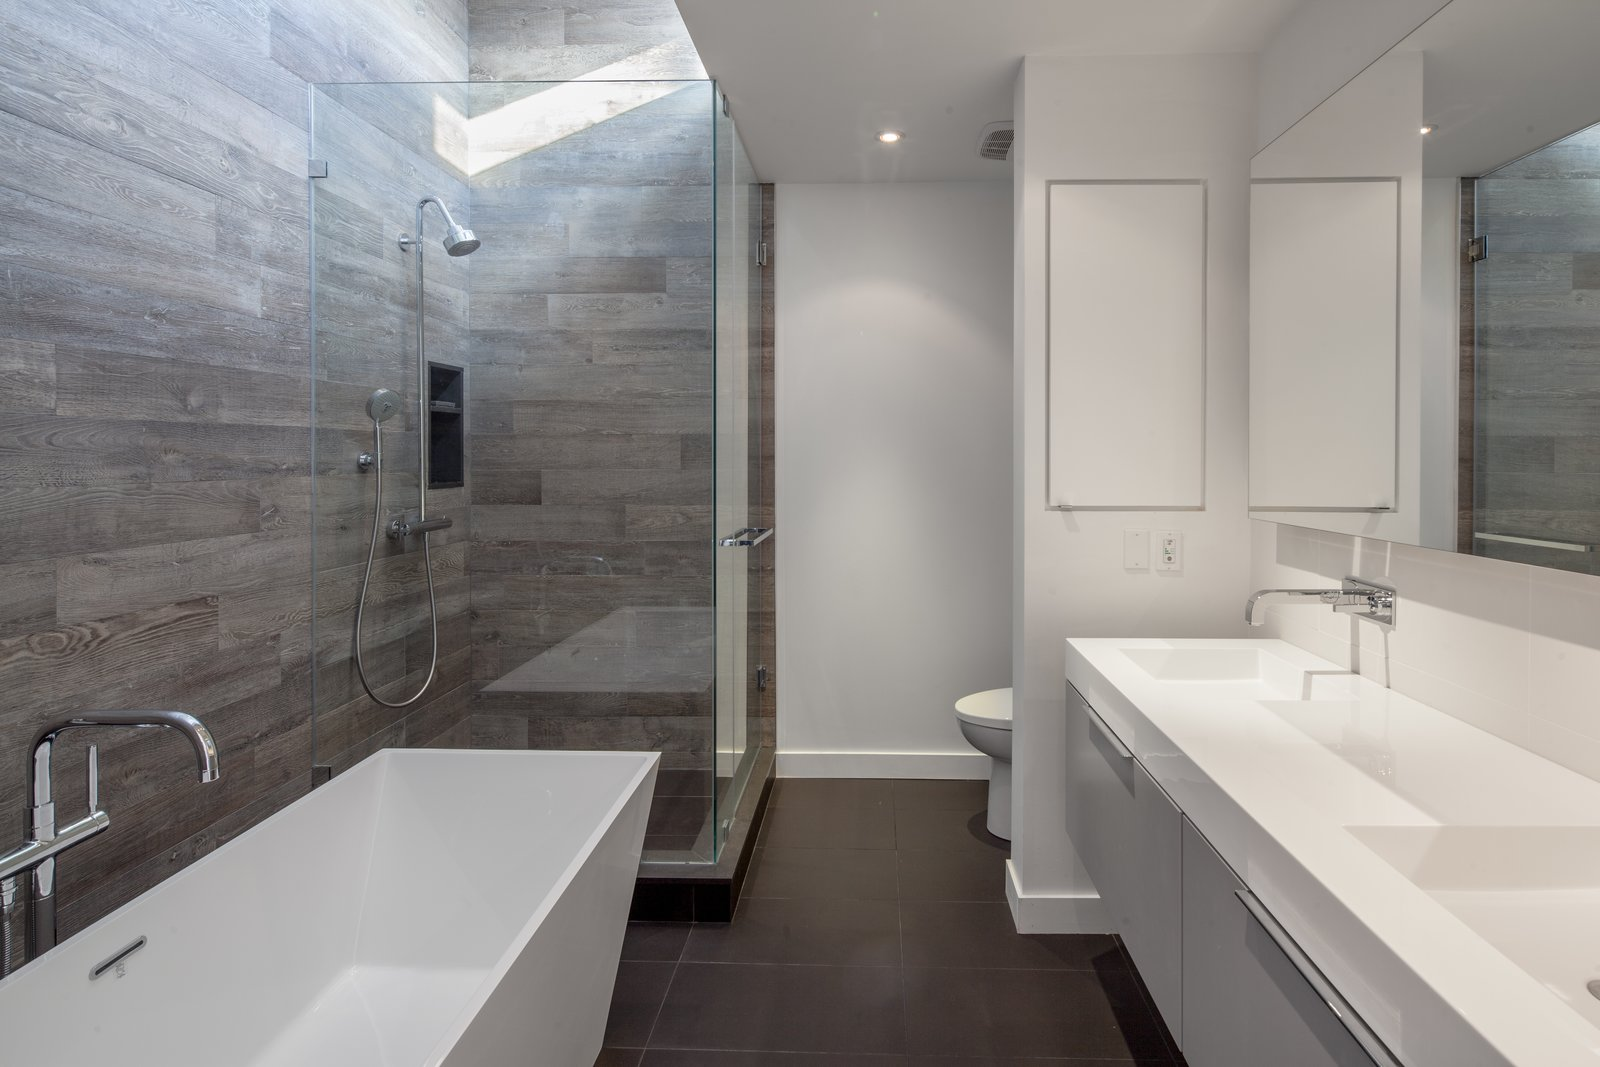 The soothing master bathroom is a vision in white and grey. On the walls, Statale 9 tiles by Viva blend the aesthetics of concrete and rough-hewn wood. This textural element contrasts with the crispness of the angular sinks and tub from Neptune's Wish Collection.